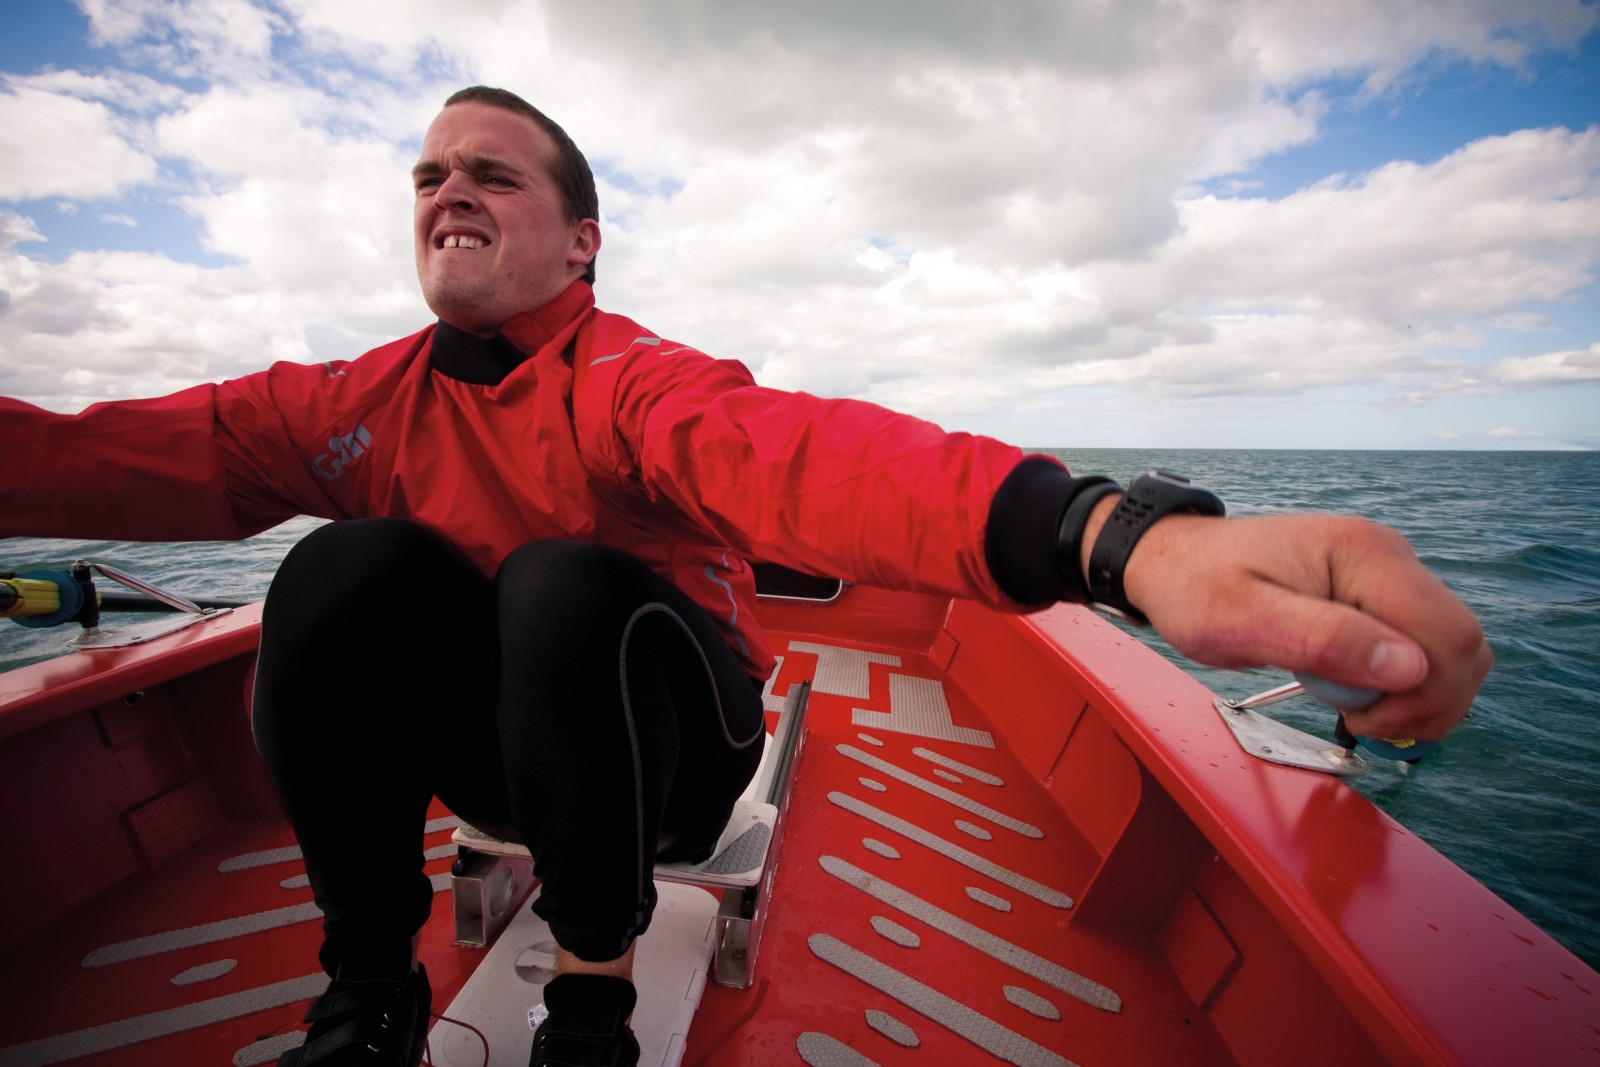 With a sliding seat and sealed cabin, Shaun Quincey's vessel is part rowing skiff, part lifeboat. With funding from the New Zealand Geographic Trust he is attempting to cross the Tasman—2300 km from Coff's Harbour to Taranaki—alone.